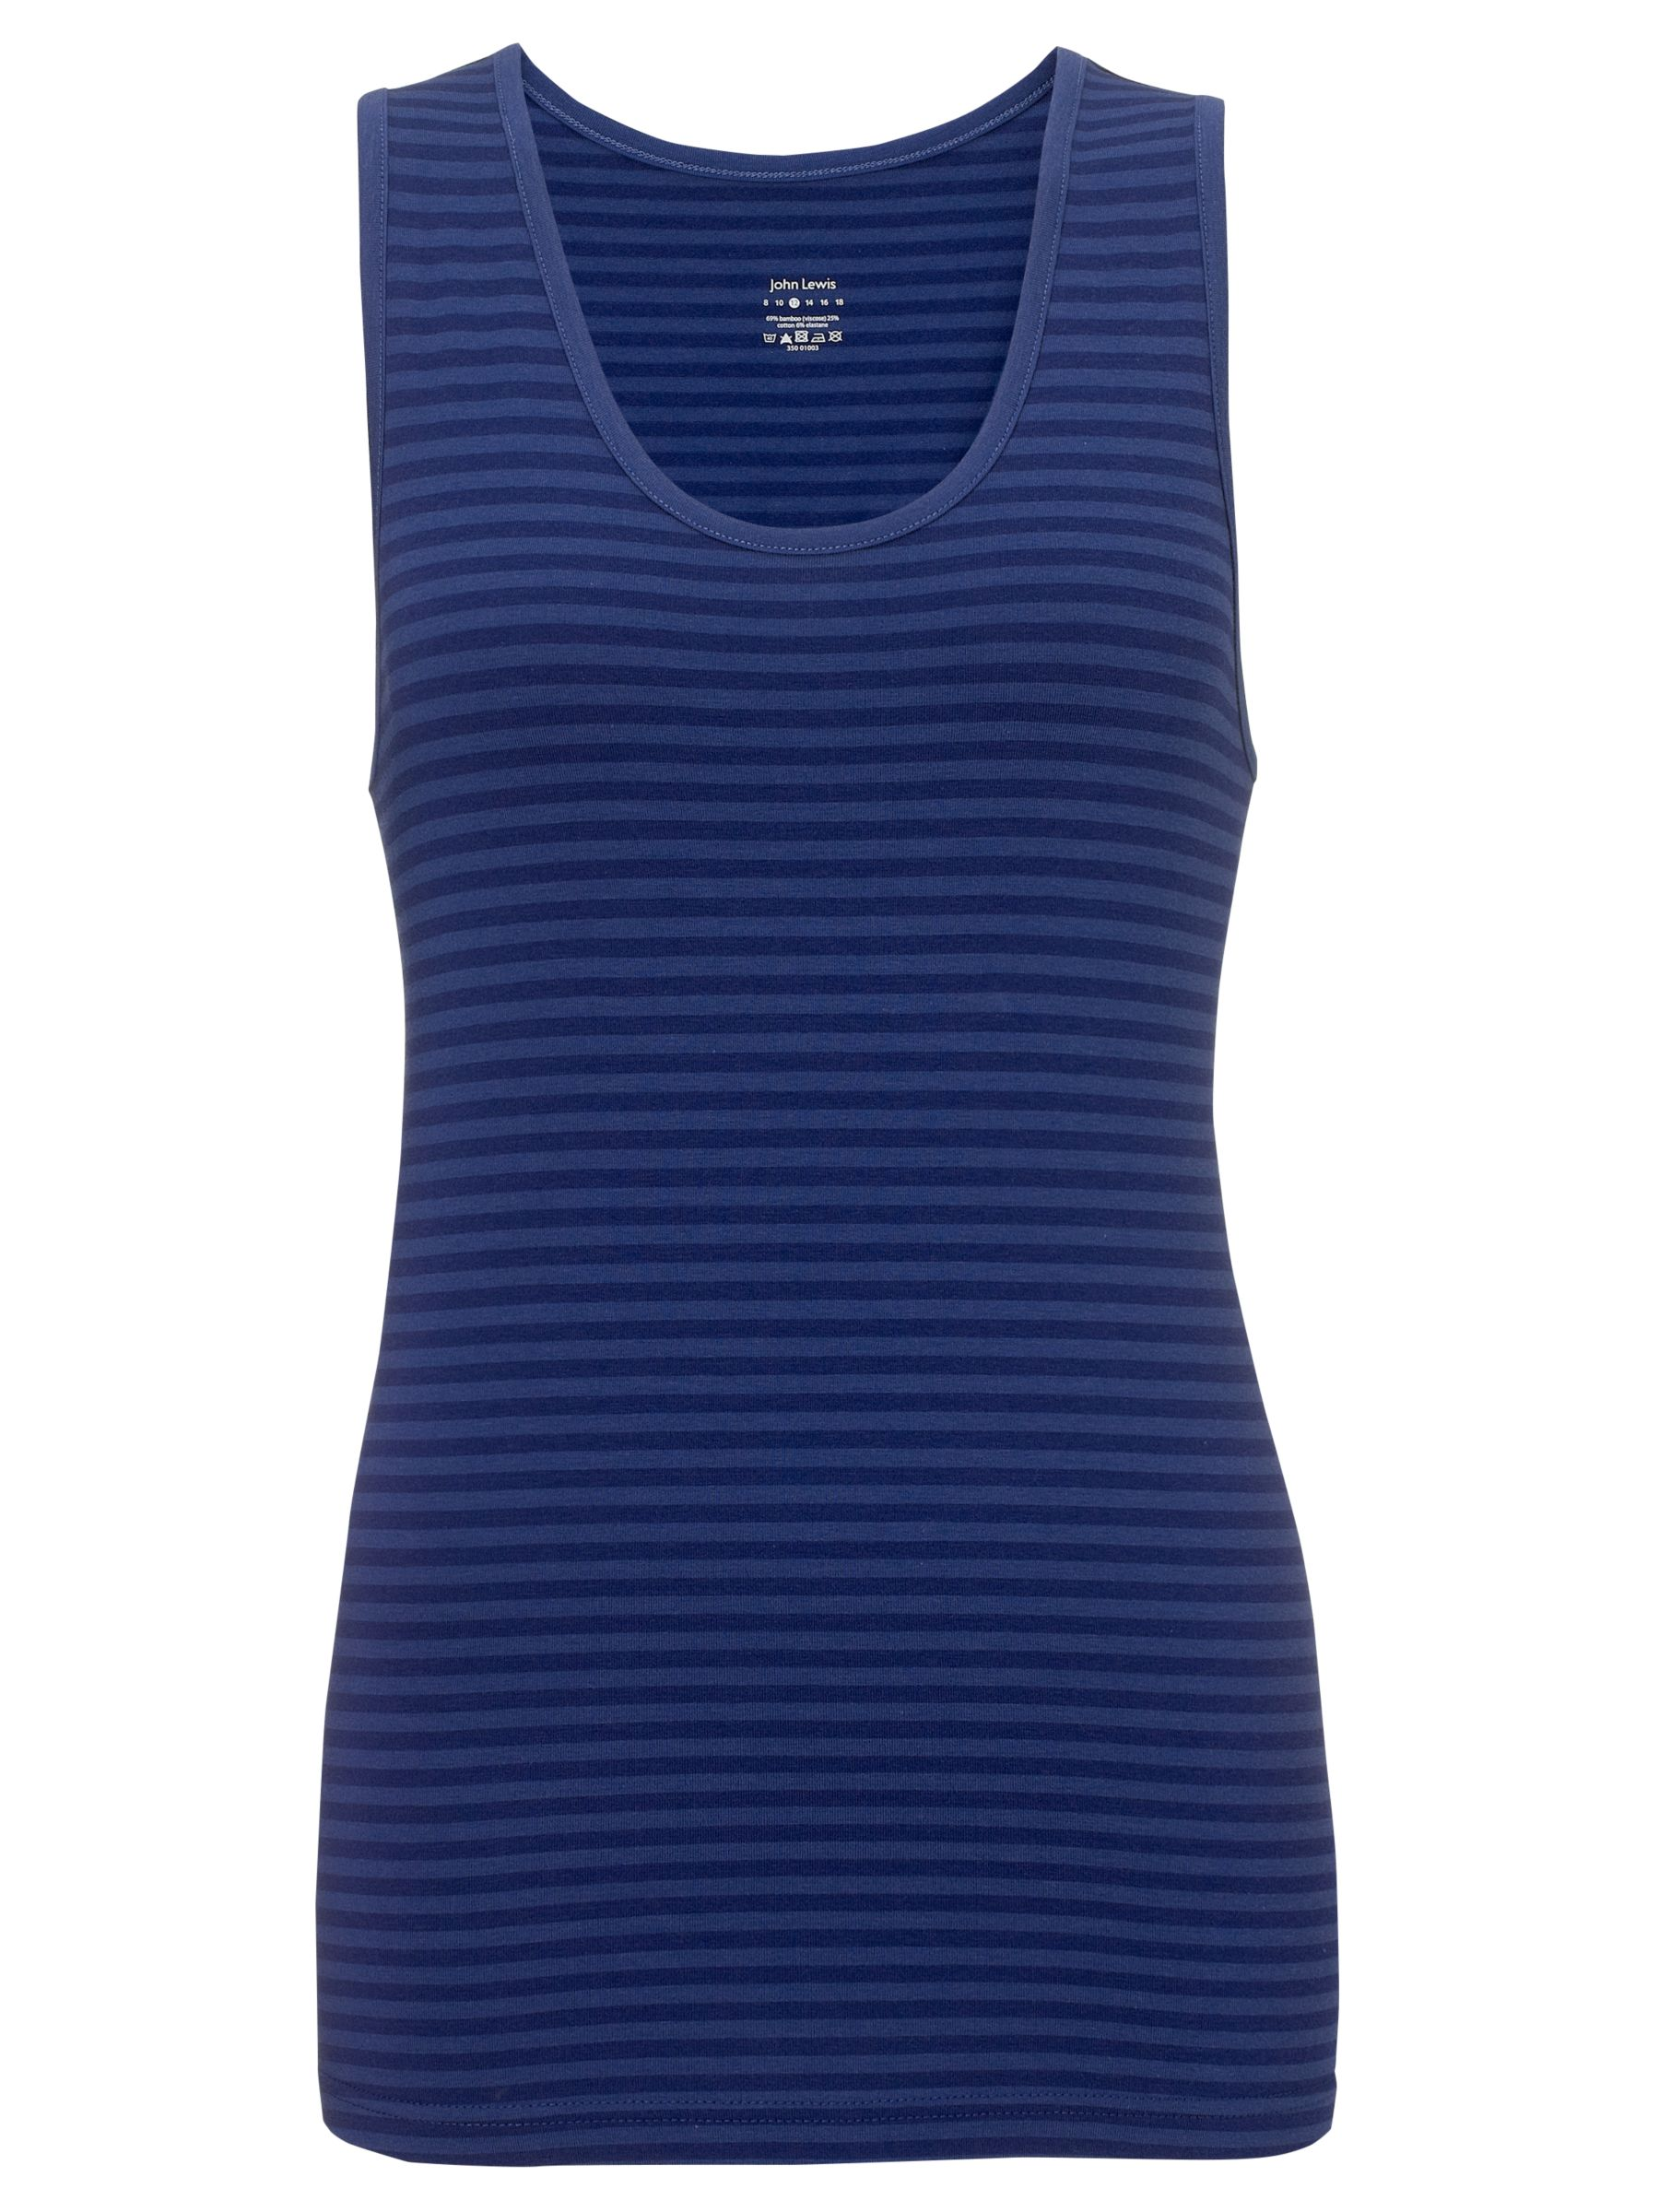 John Lewis Stripe Yoga Tank Top, Navy/Blue